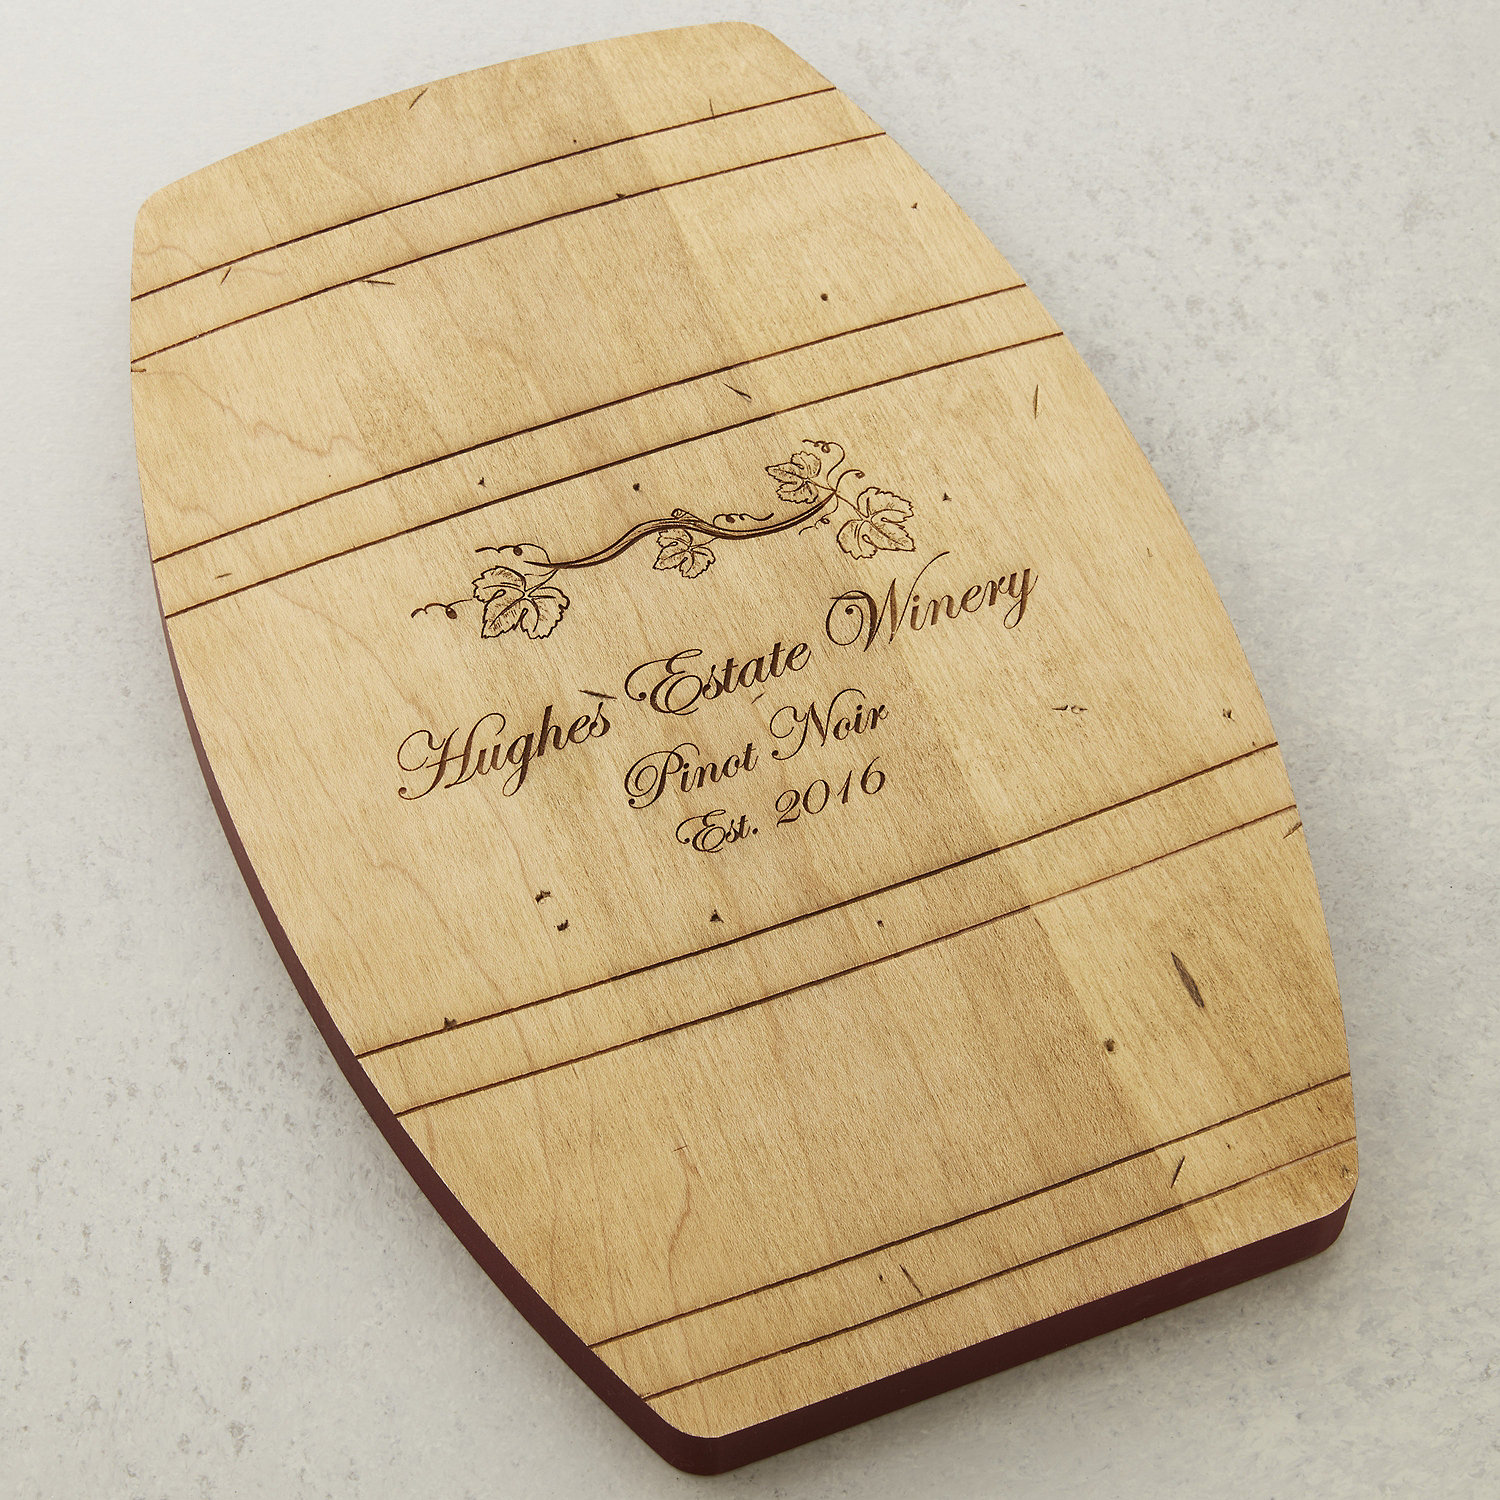 Personalized Wine Barrel Cheese Board - Wine Enthusiast